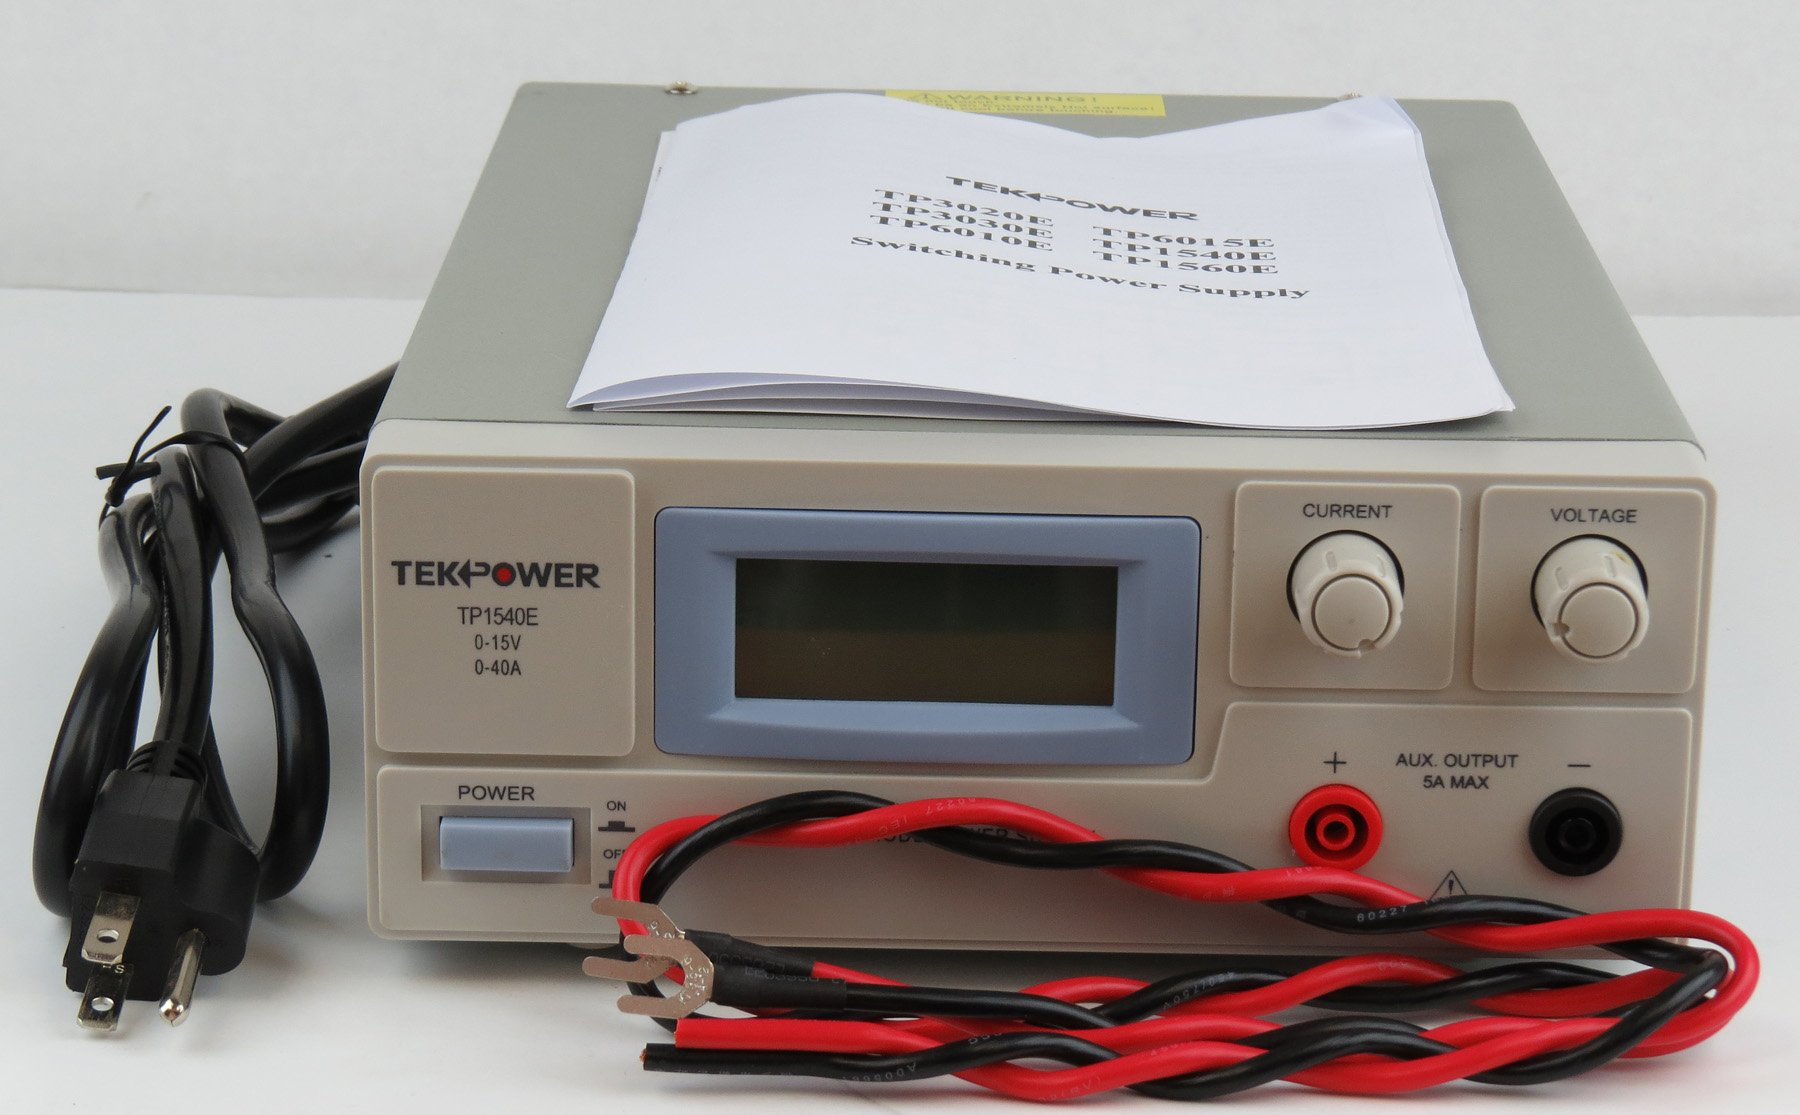 TekPower TP1540E DC Adjustable Switching Power Supply 15V 40A Digital Display by Tekpower (Image #5)